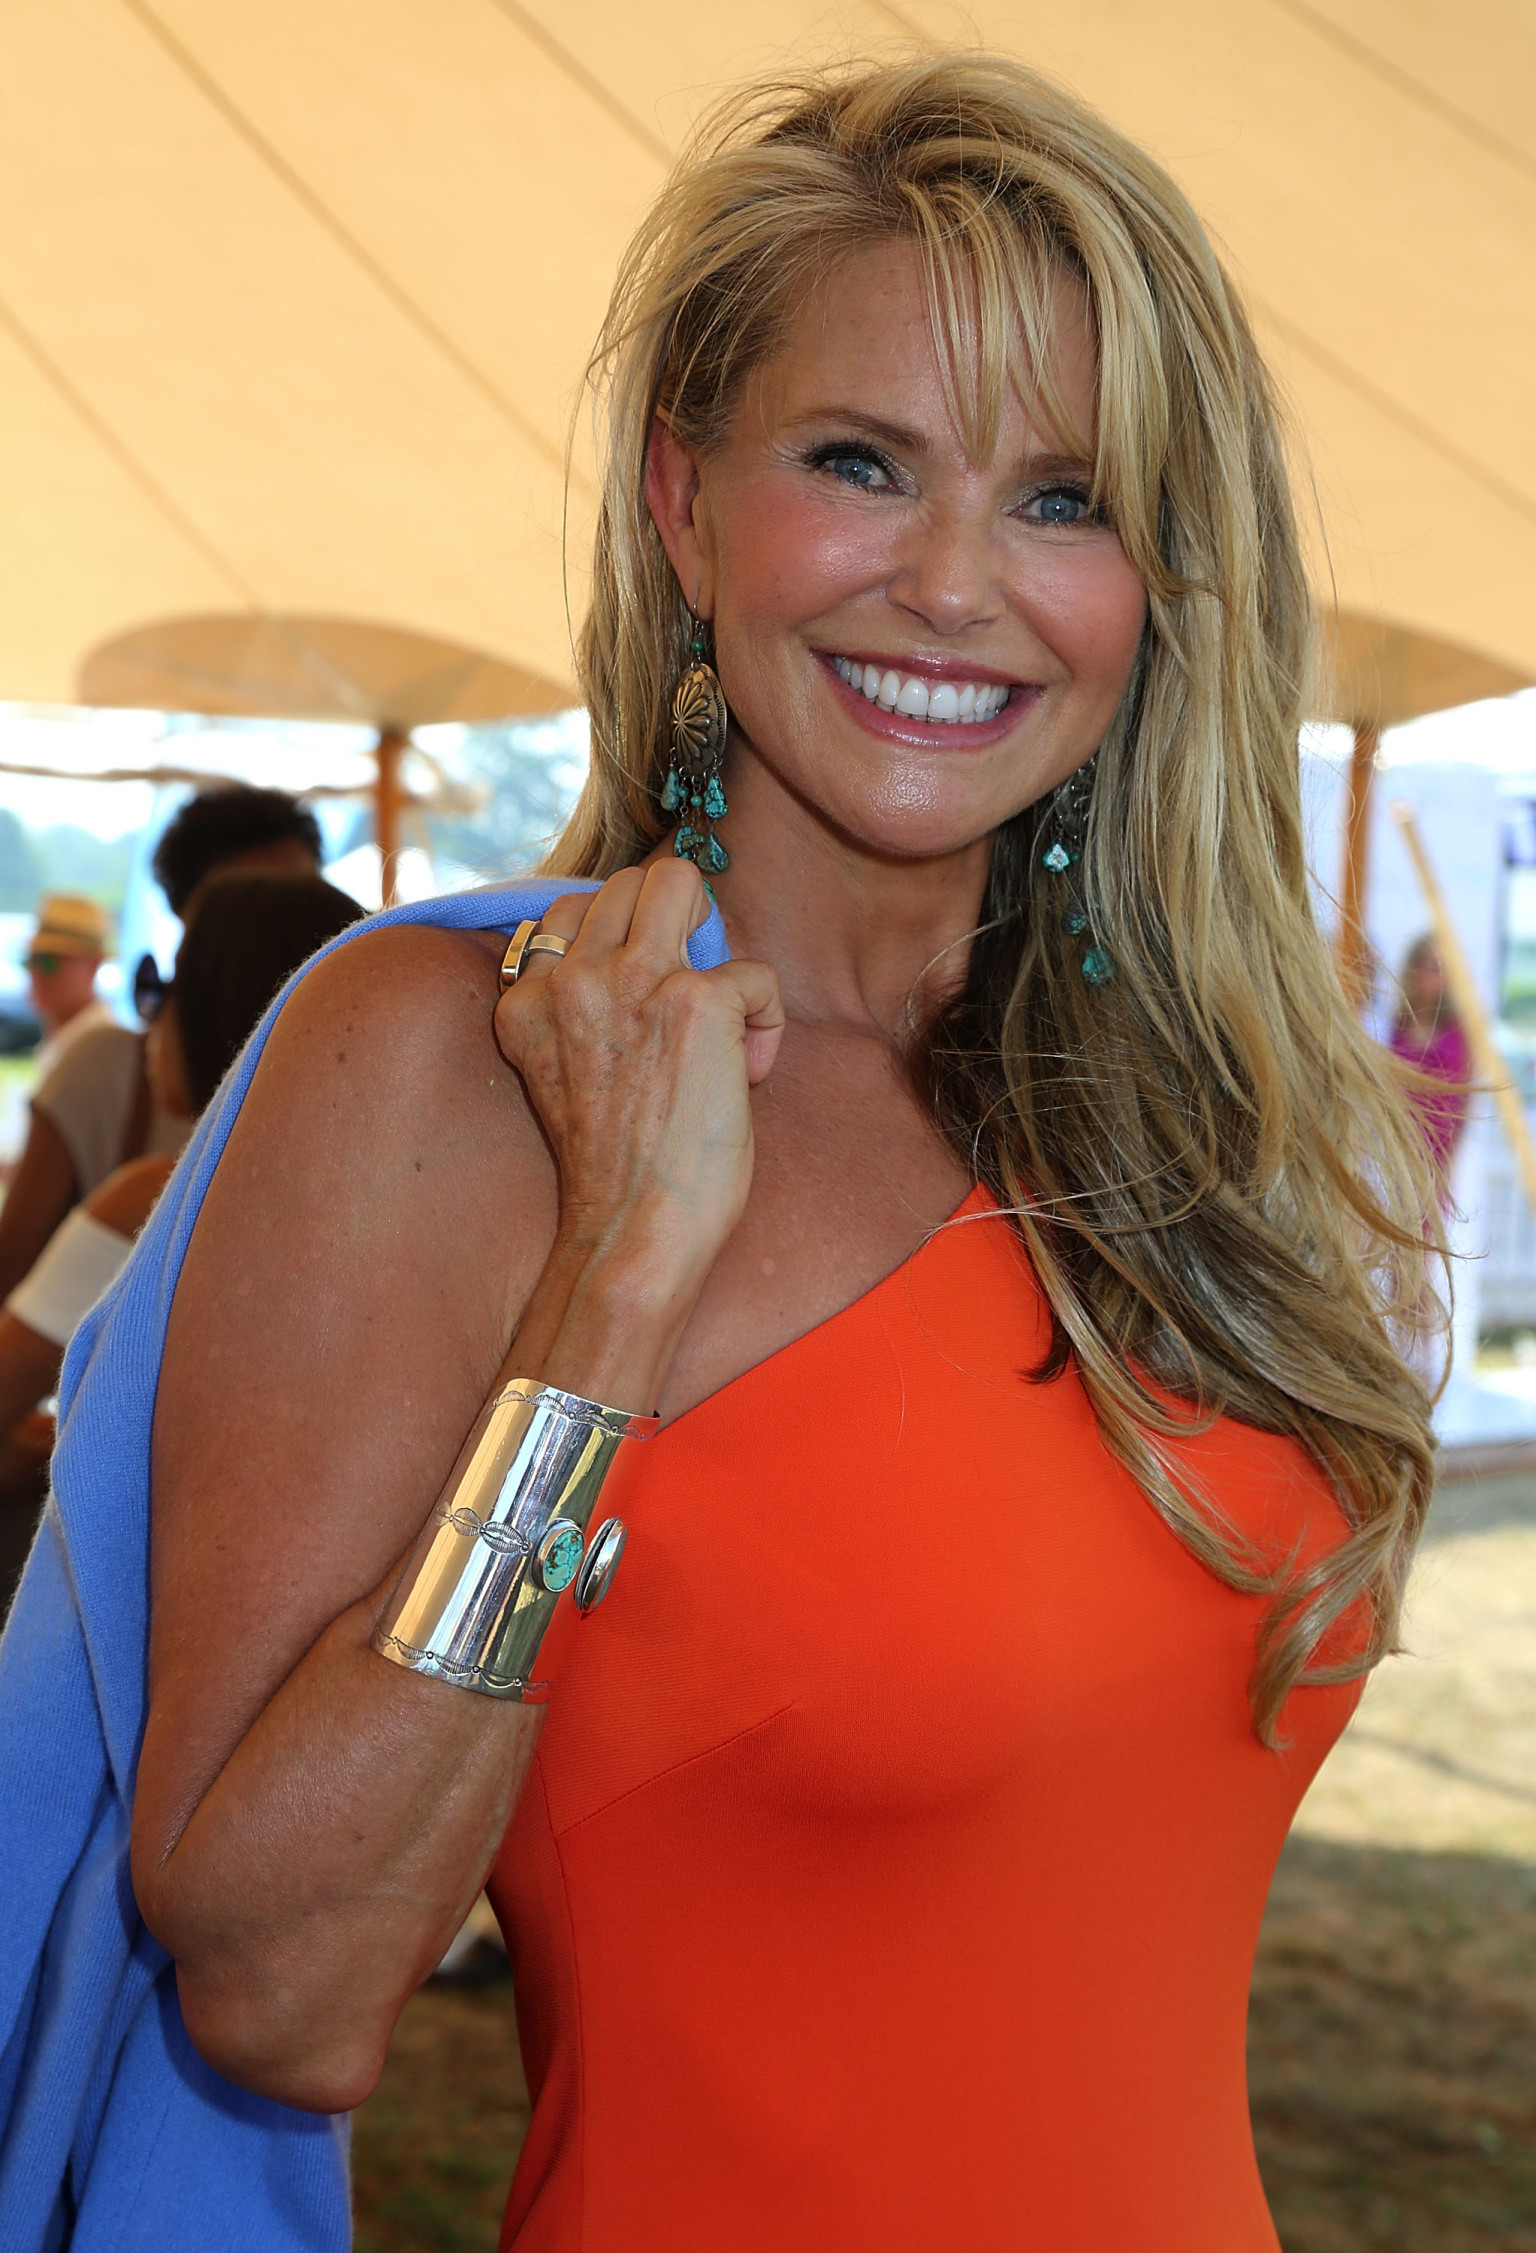 Fotos - Image Search Christie Brinkley Facebook